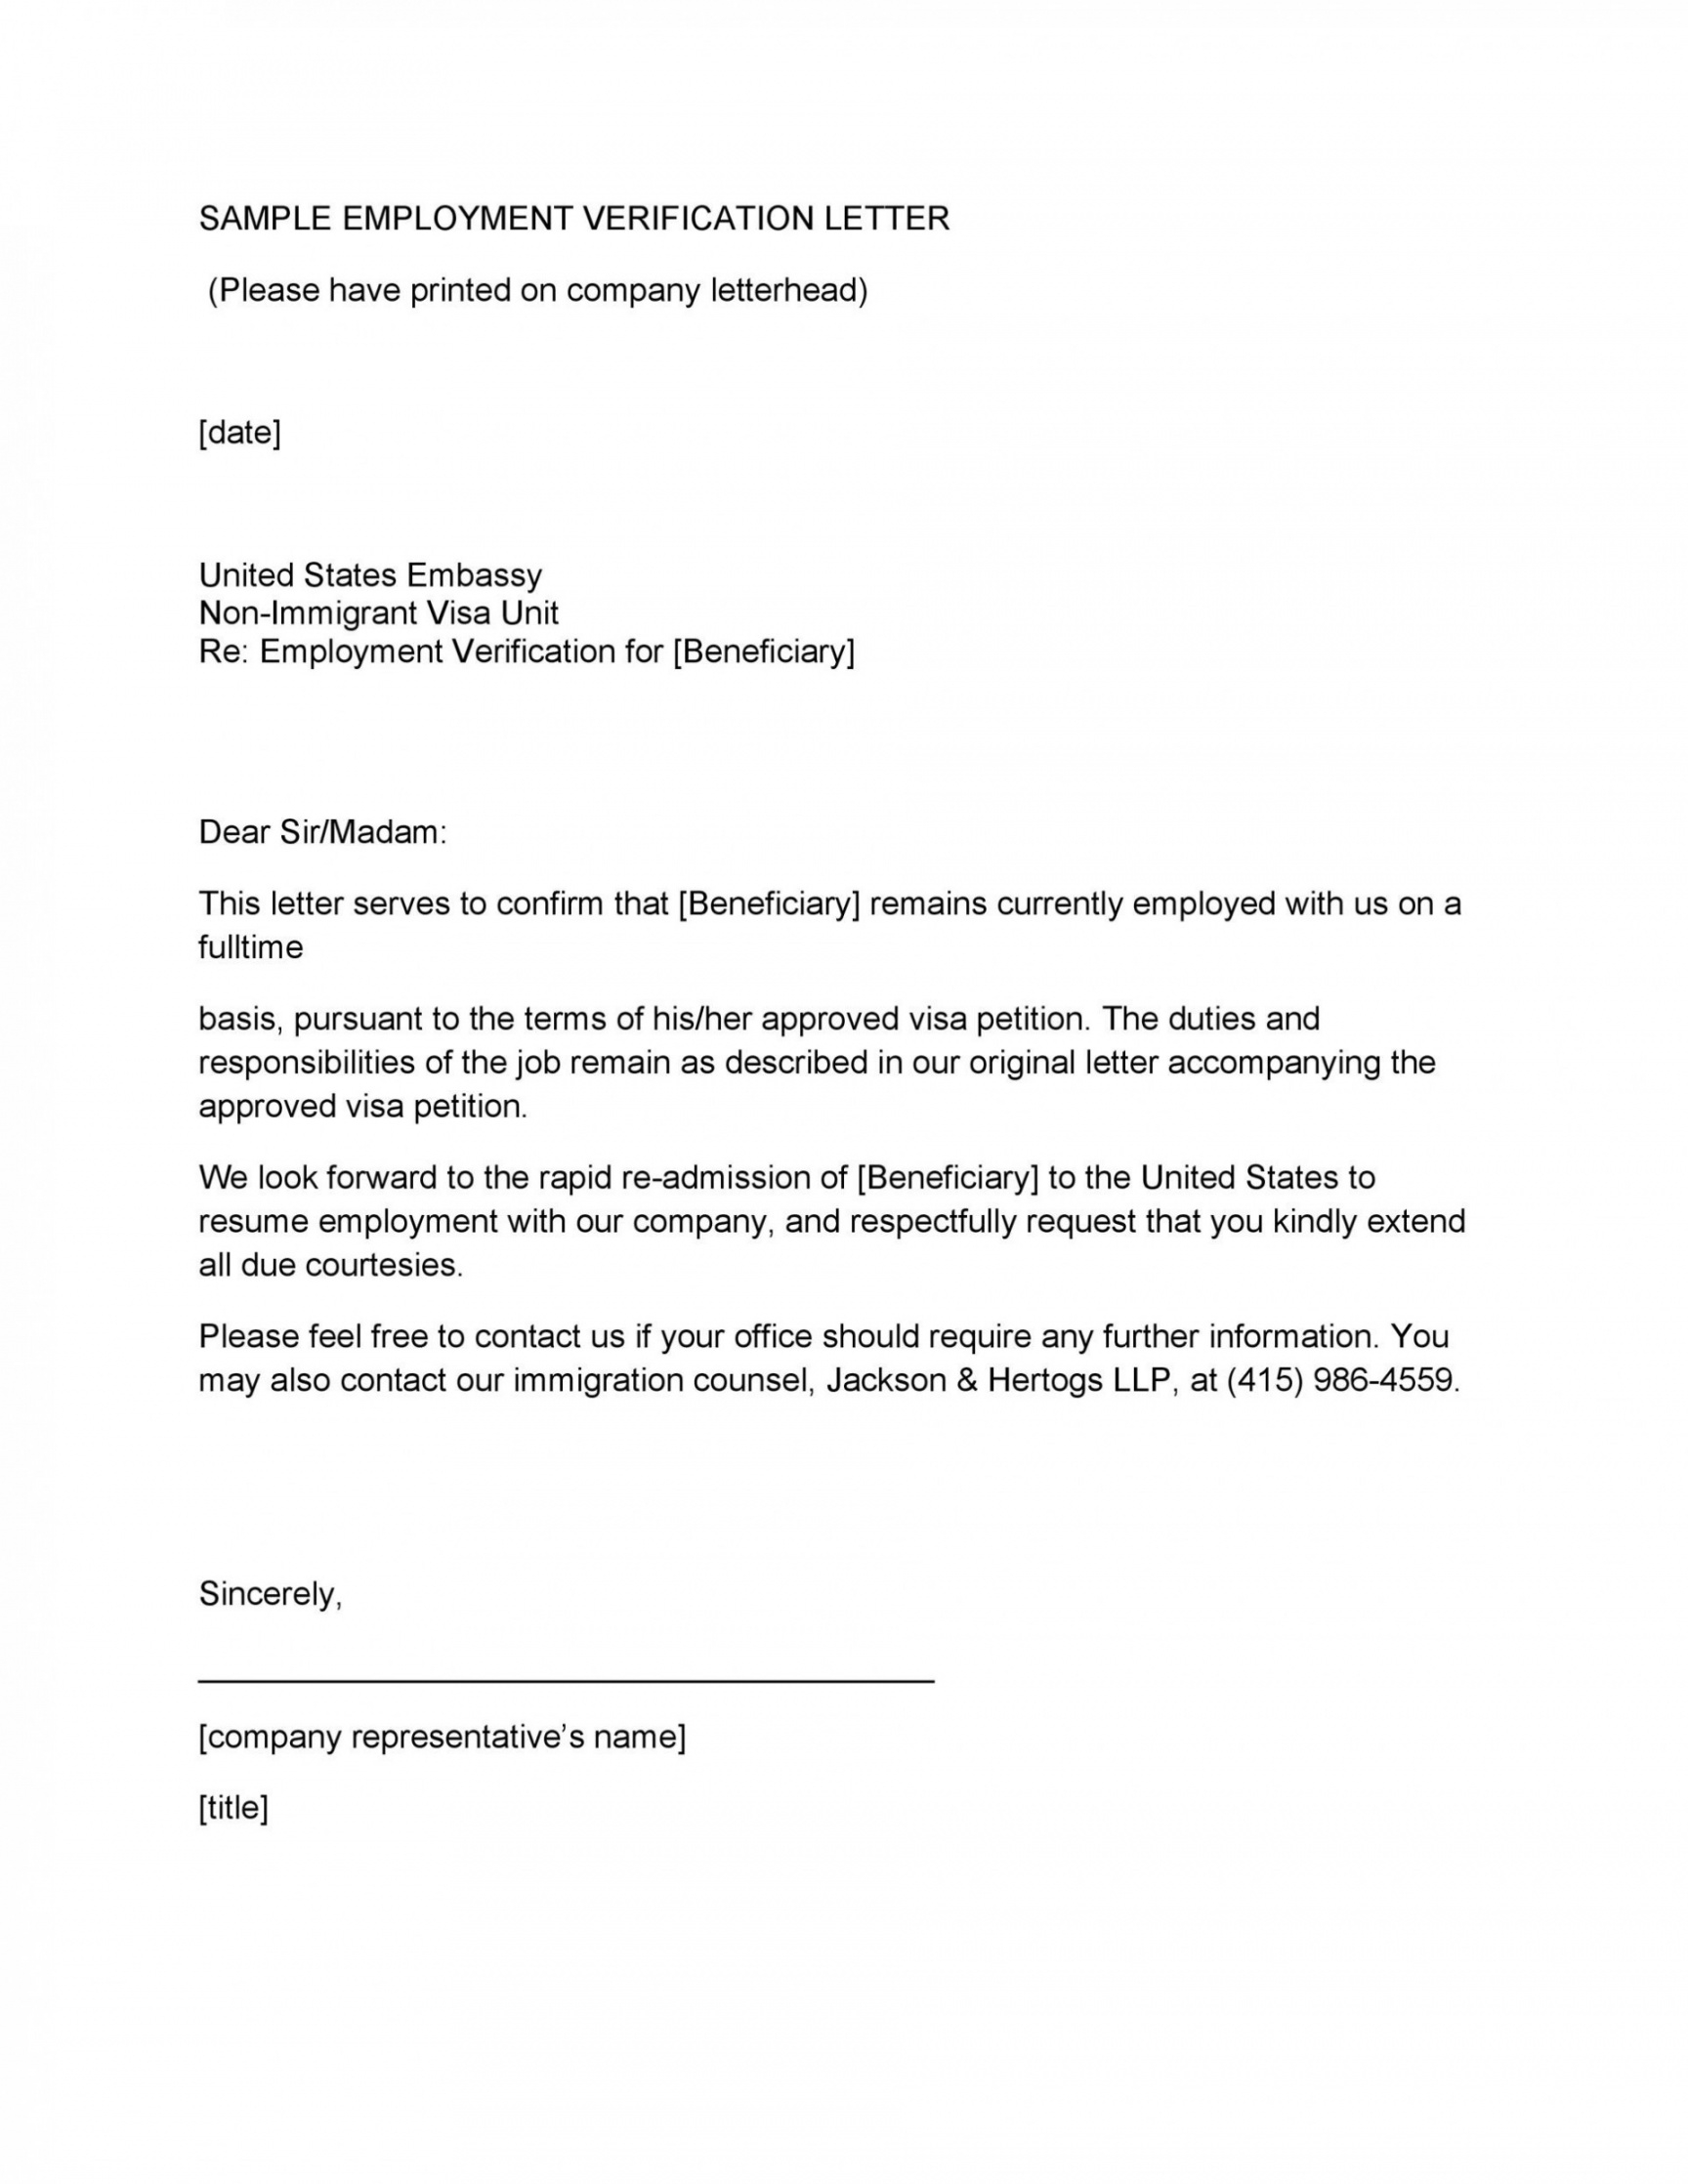 costum employment verification letter for immigration  example